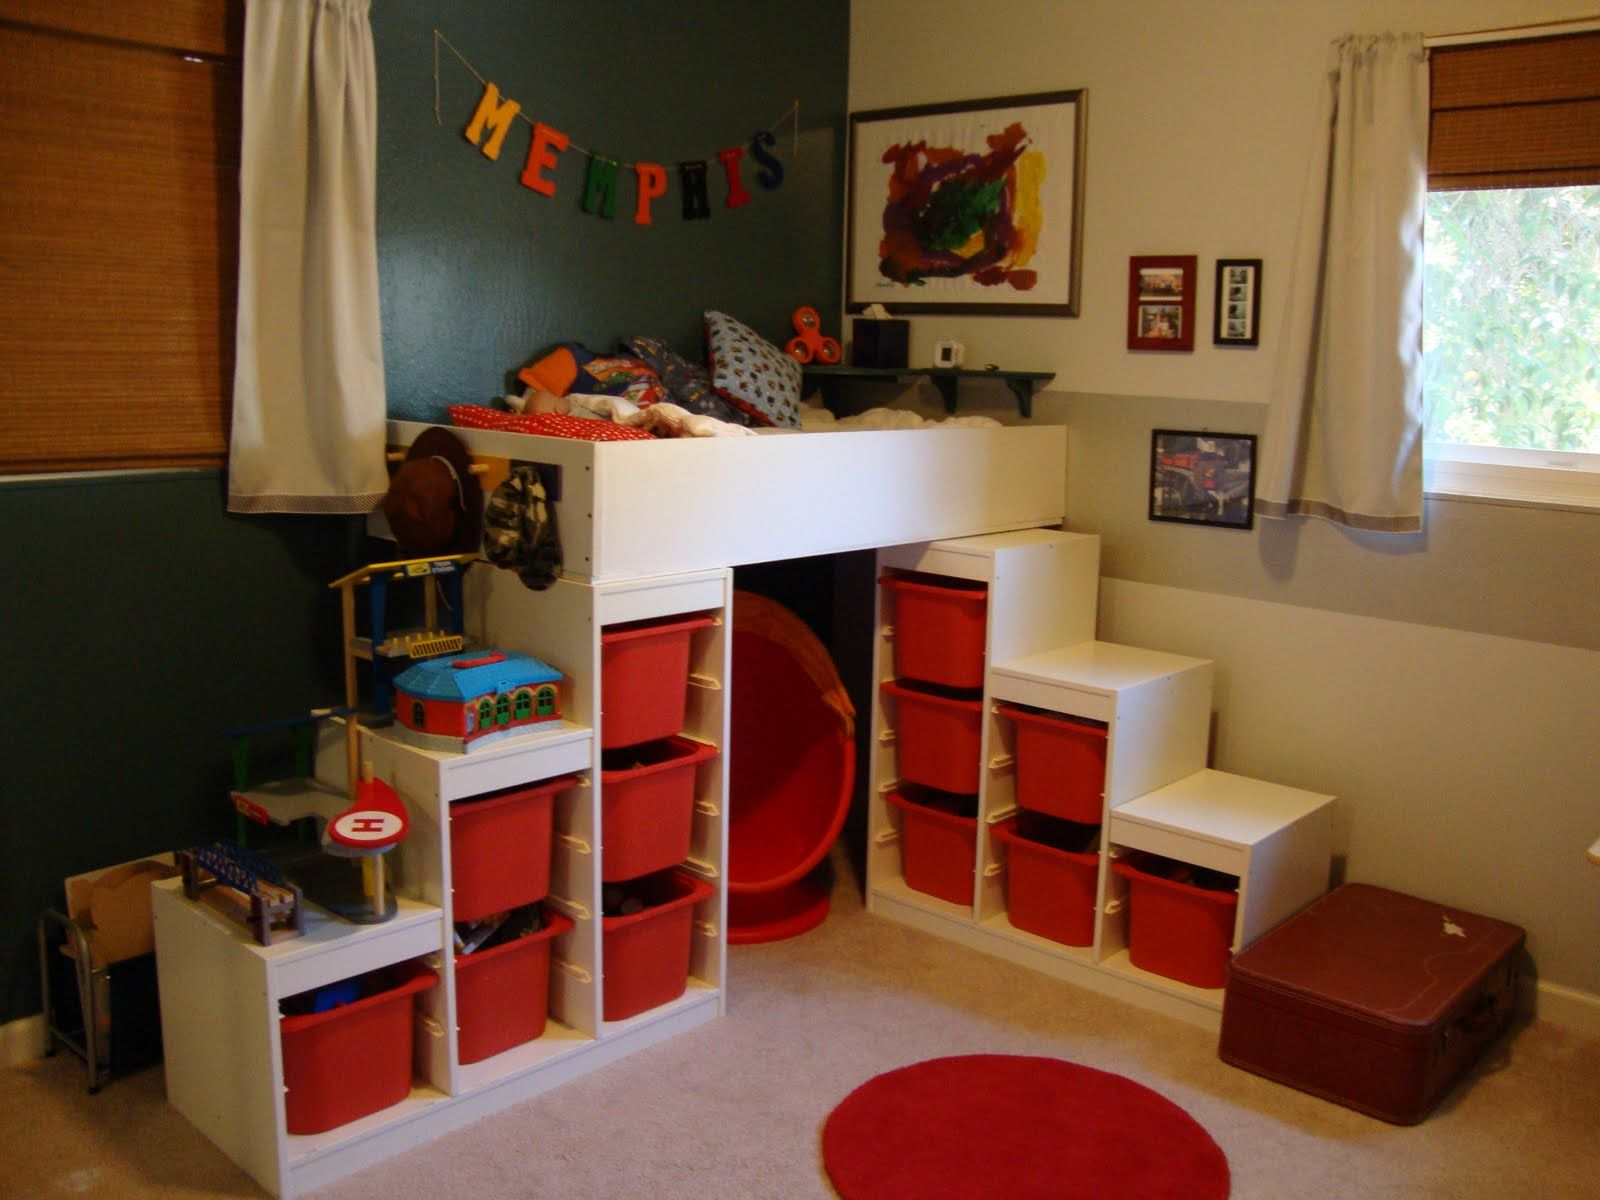 This Would Make A Great Reading Area Book Storage And Nook On Top Underneath For Multiple Children